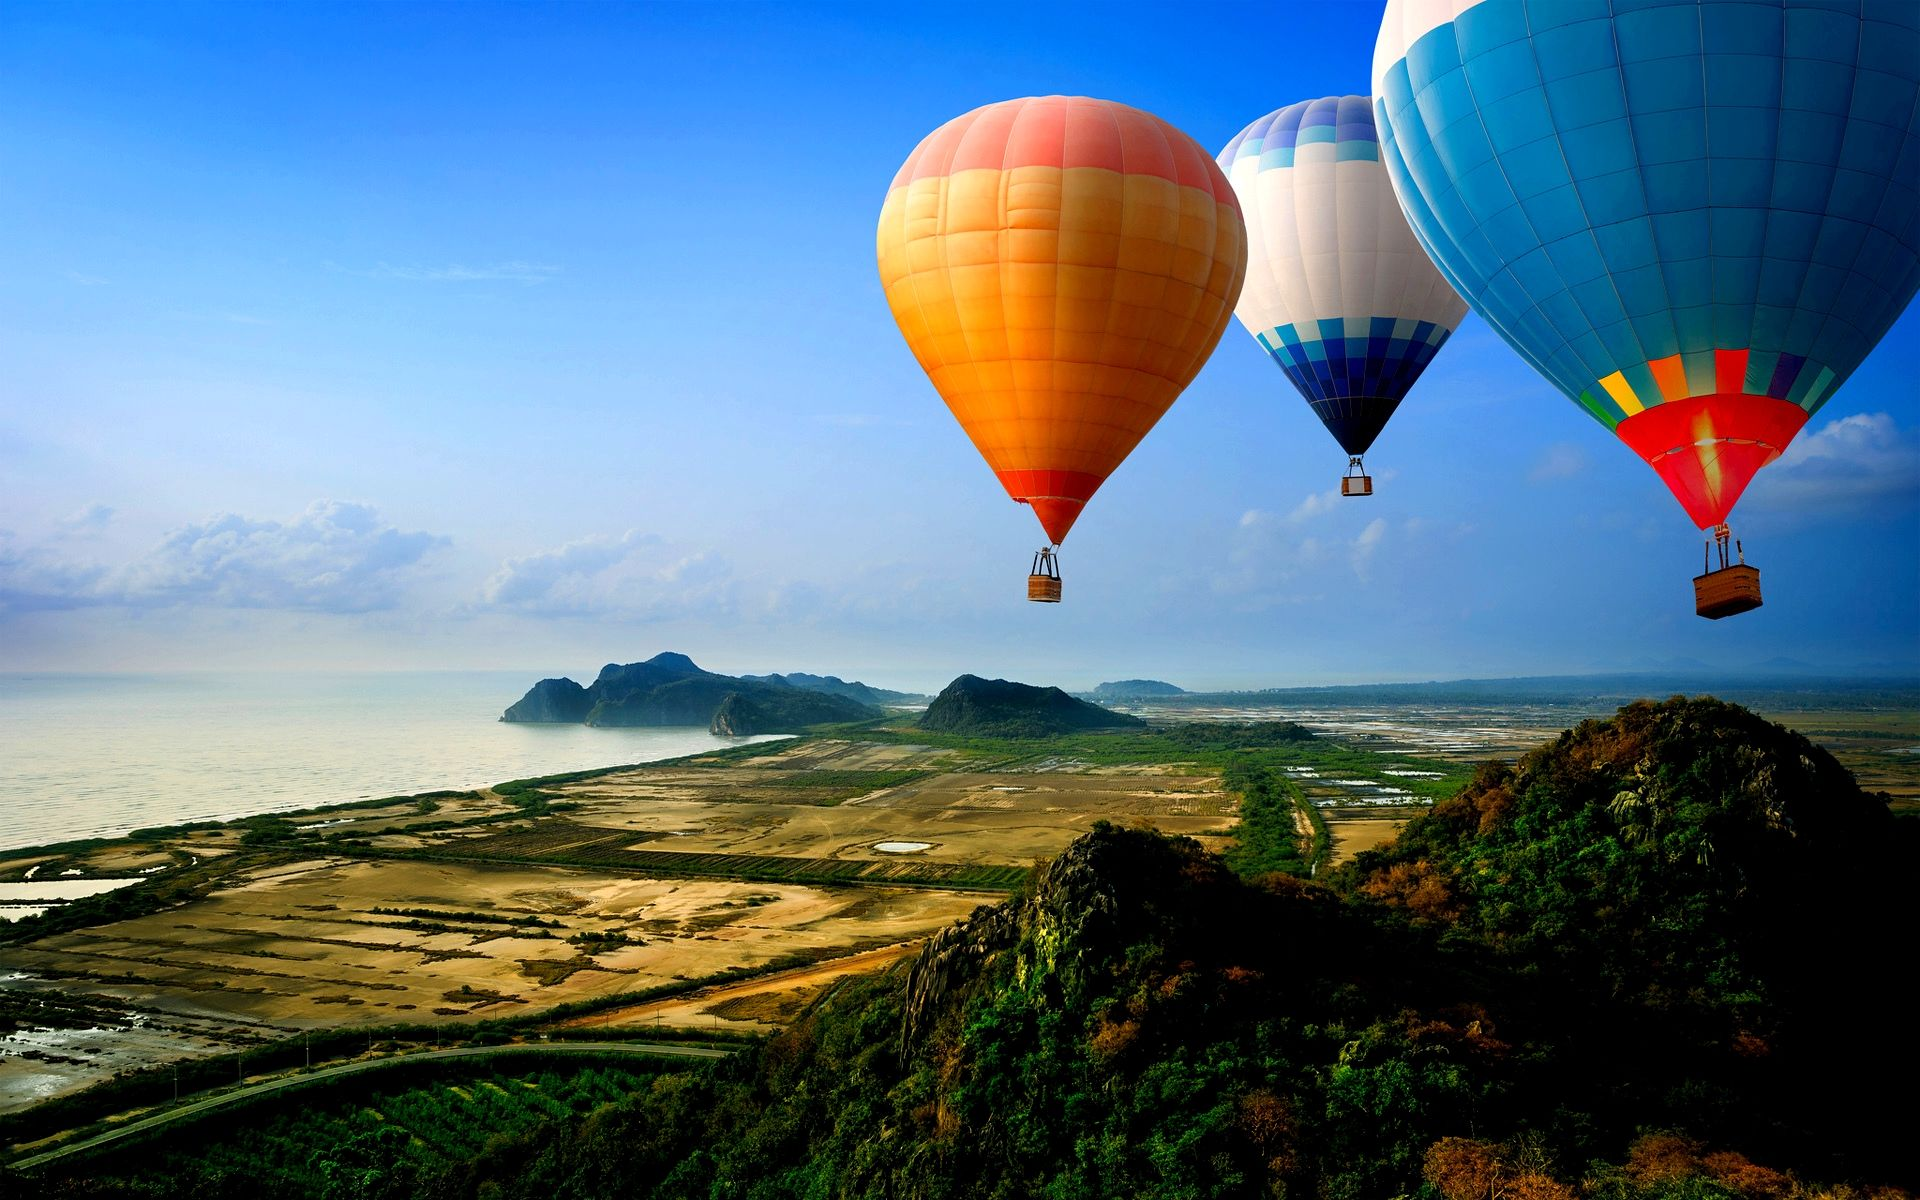 Hd Hot Air Balloons Wallpaper  Download Free - 131829 -1344